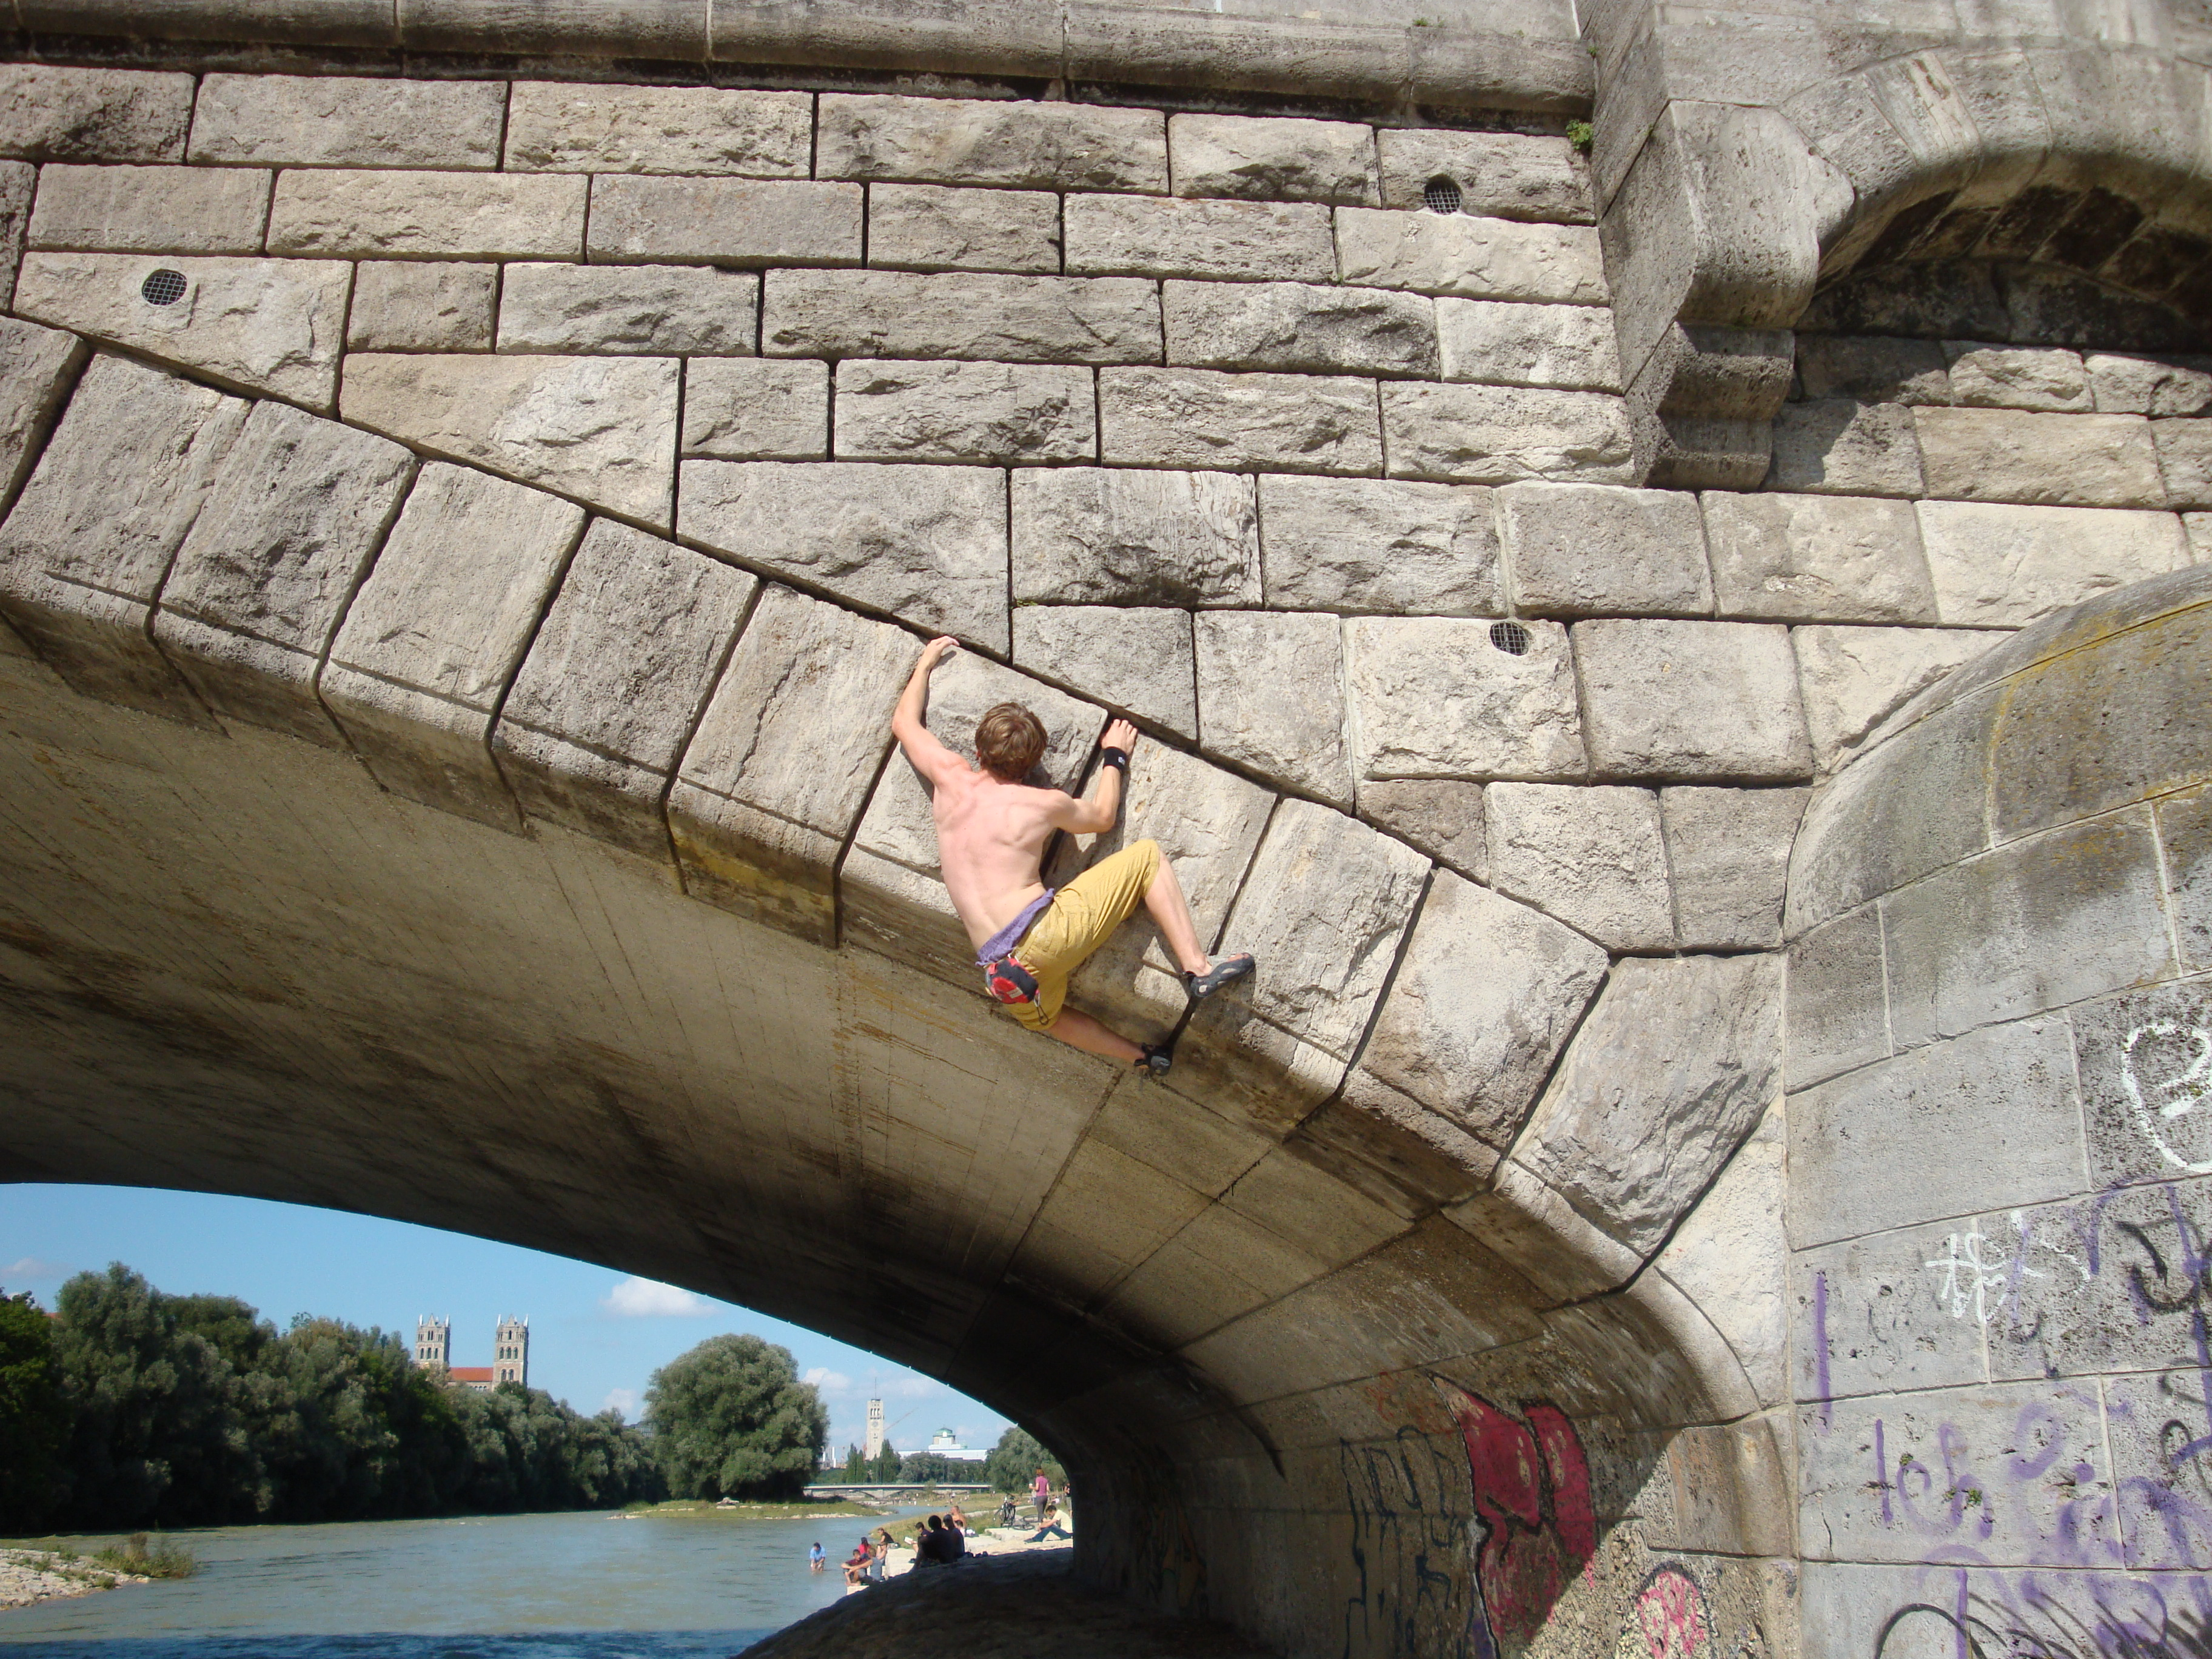 Buildering in München…One city, different cultures